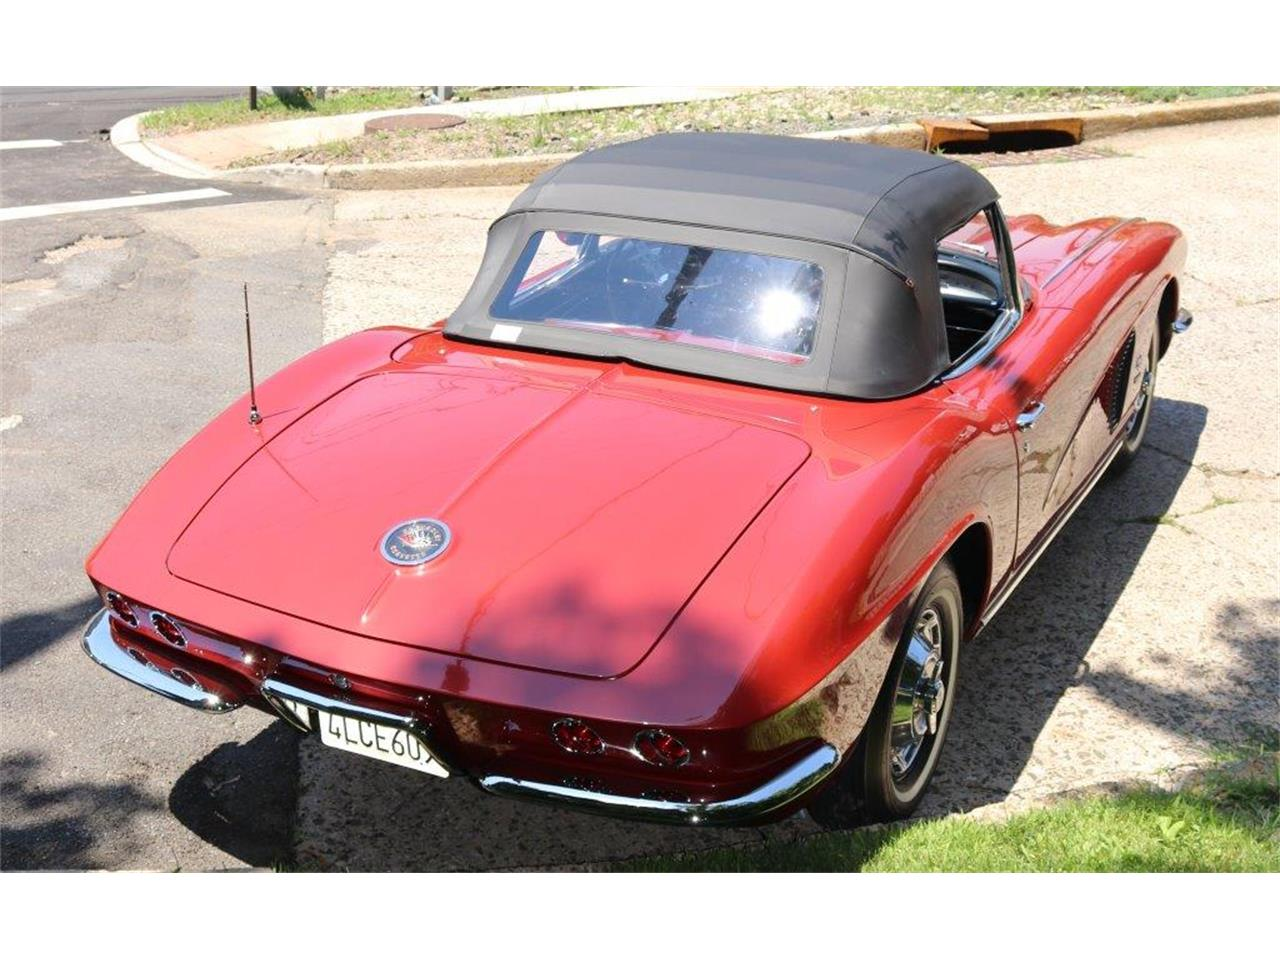 Large Picture of Classic 1962 Corvette located in New Jersey - $99,000.00 Offered by a Private Seller - OMBK